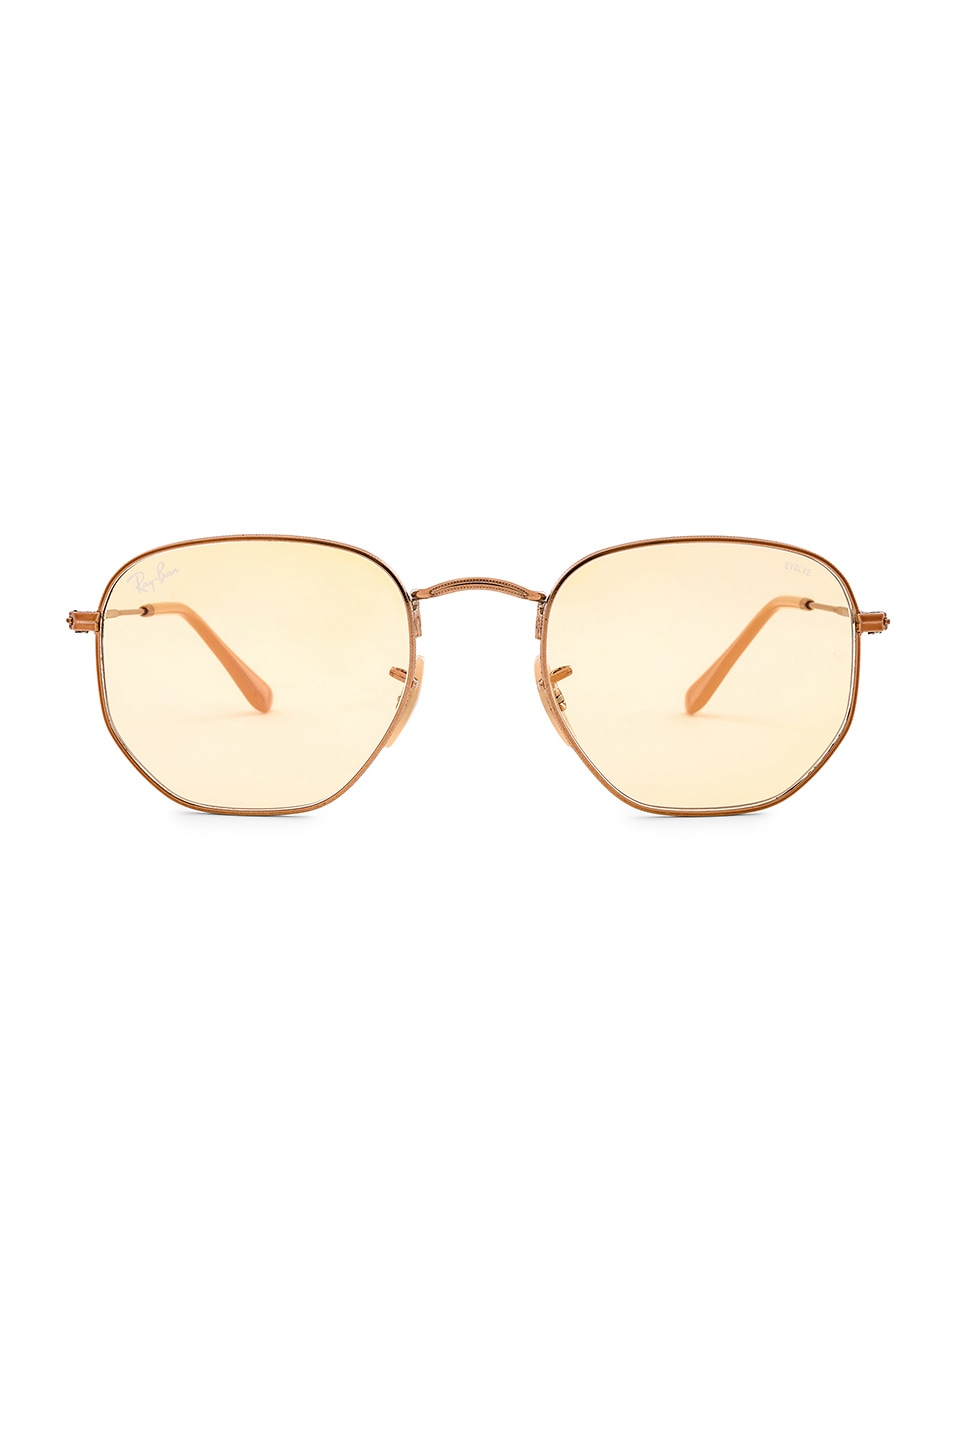 Ray-Ban Evolve Hexagonal Flat in Copper & Light Yellow